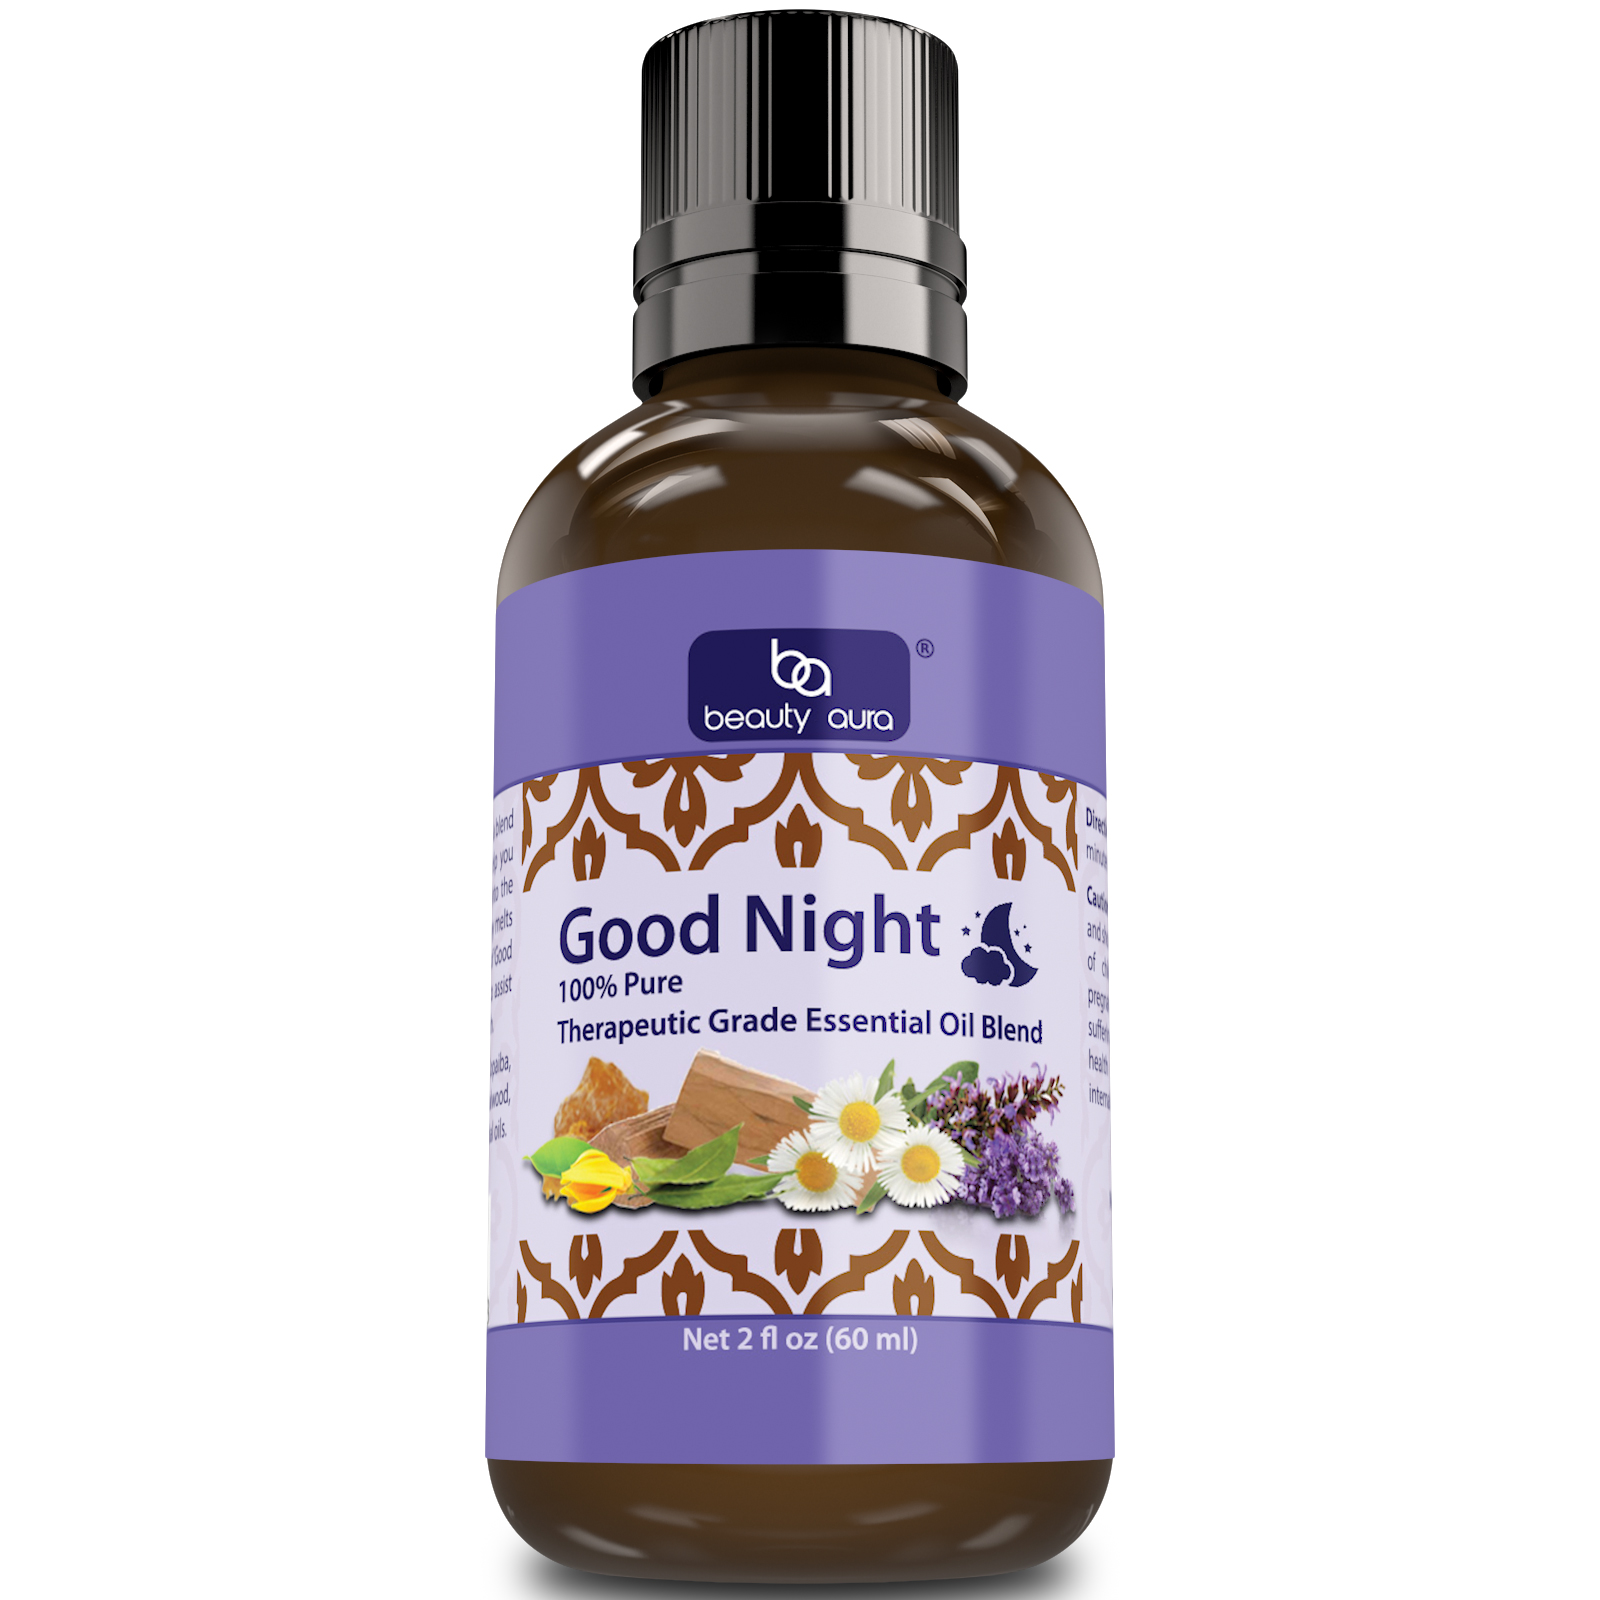 Beauty Aura Good Night Essential Oil Blend (2 Oz)- Therapeutic Grade